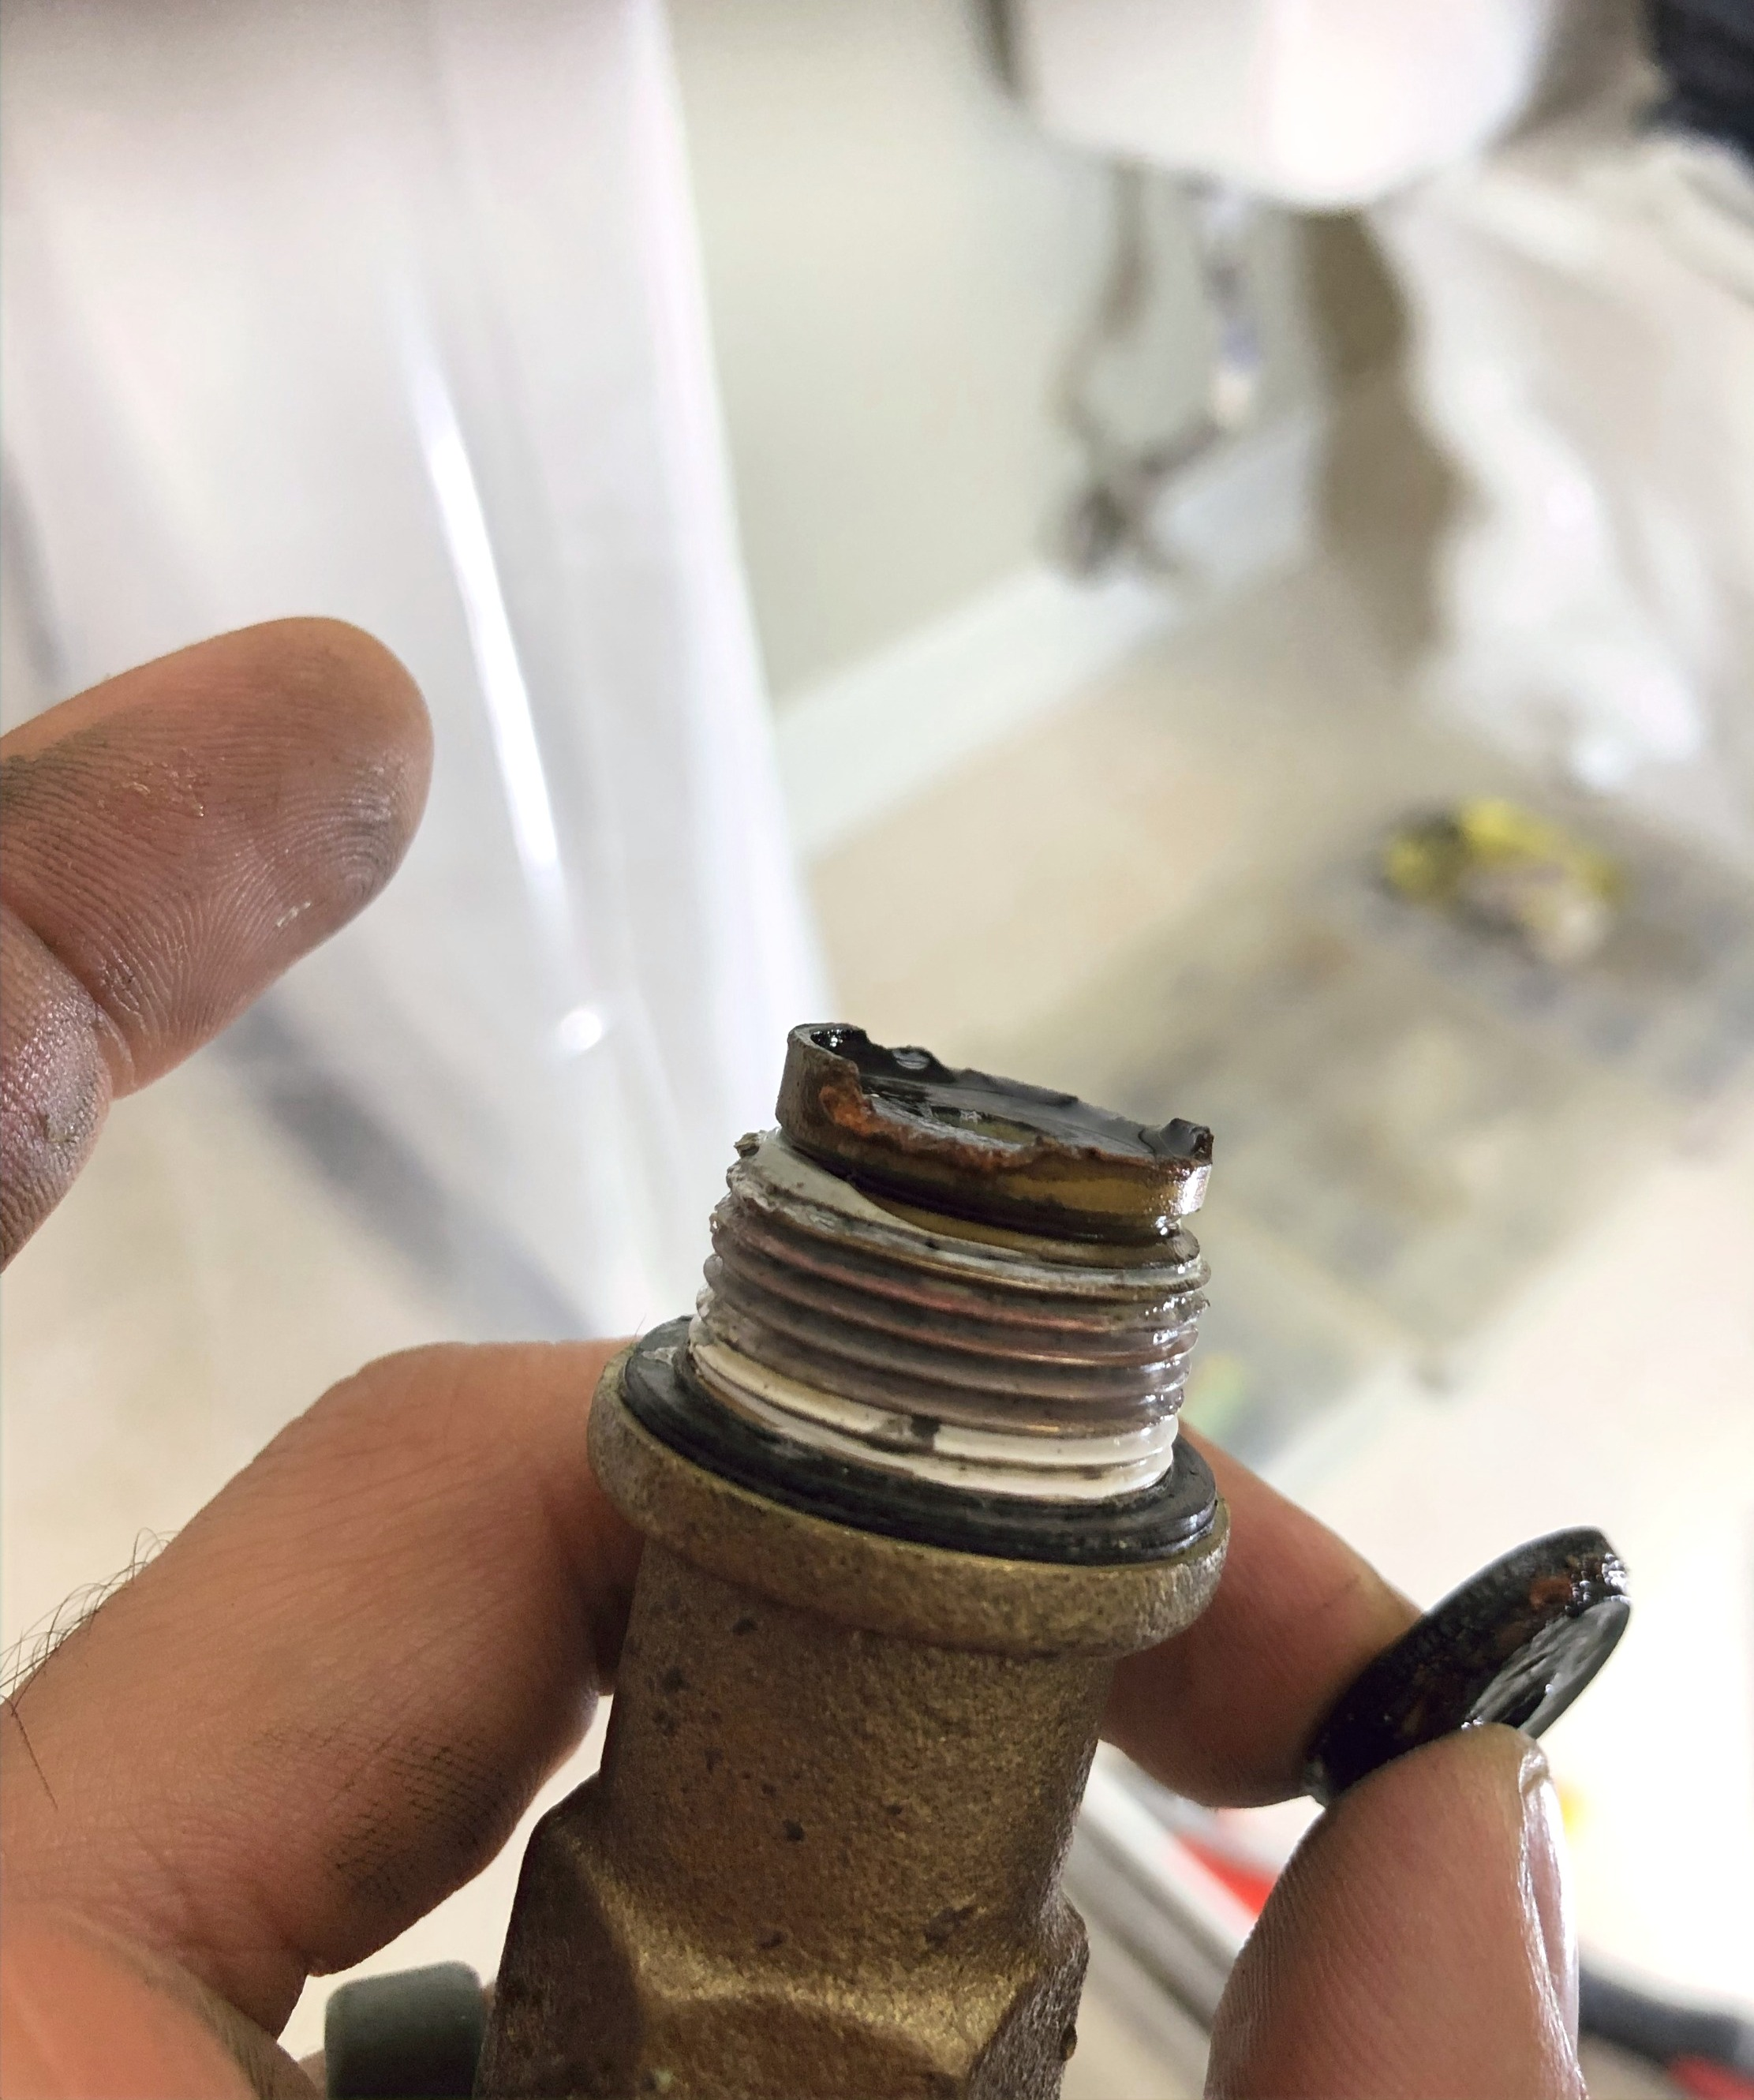 Cold Shower Stem corroded